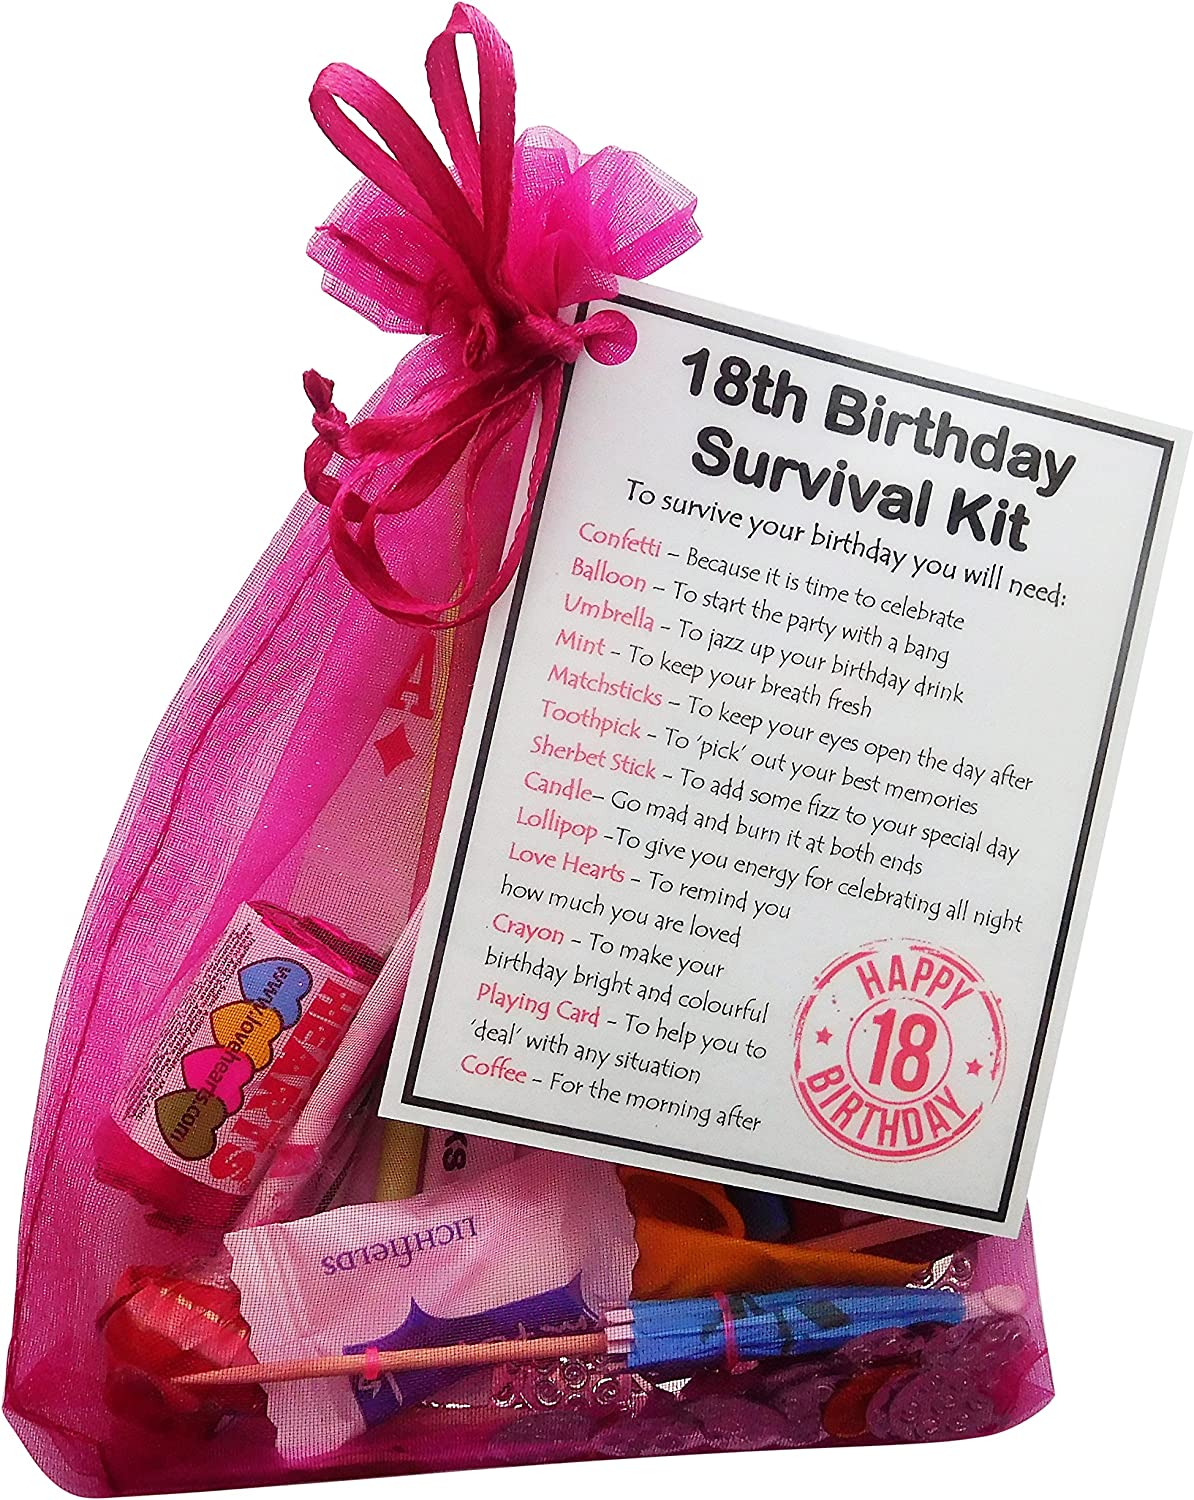 MALE 18th Birthday SURVIVAL KIT Humorous Gift Idea Unusual Fun Novelty Present